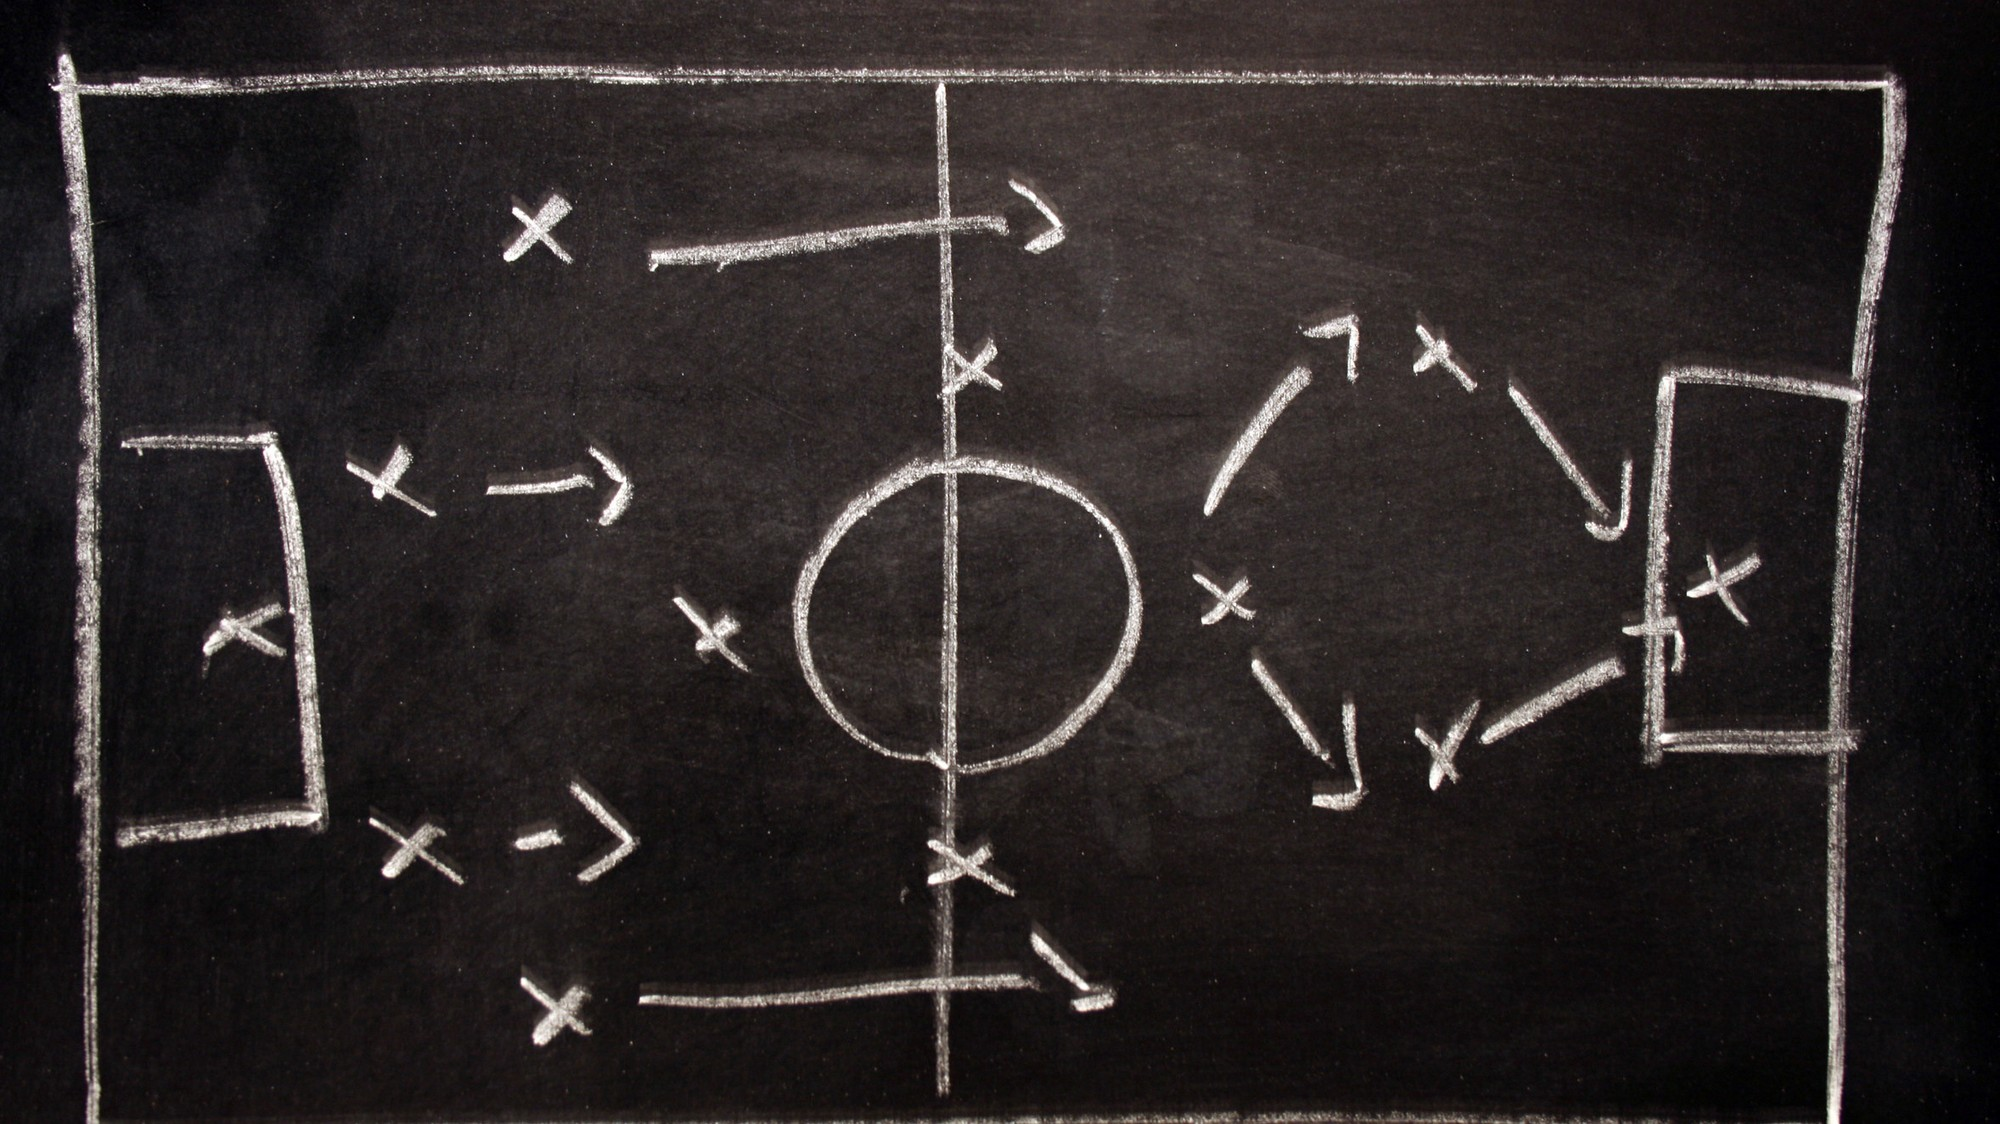 Why Tactical Analysis in Soccer Is Dumb - VICE